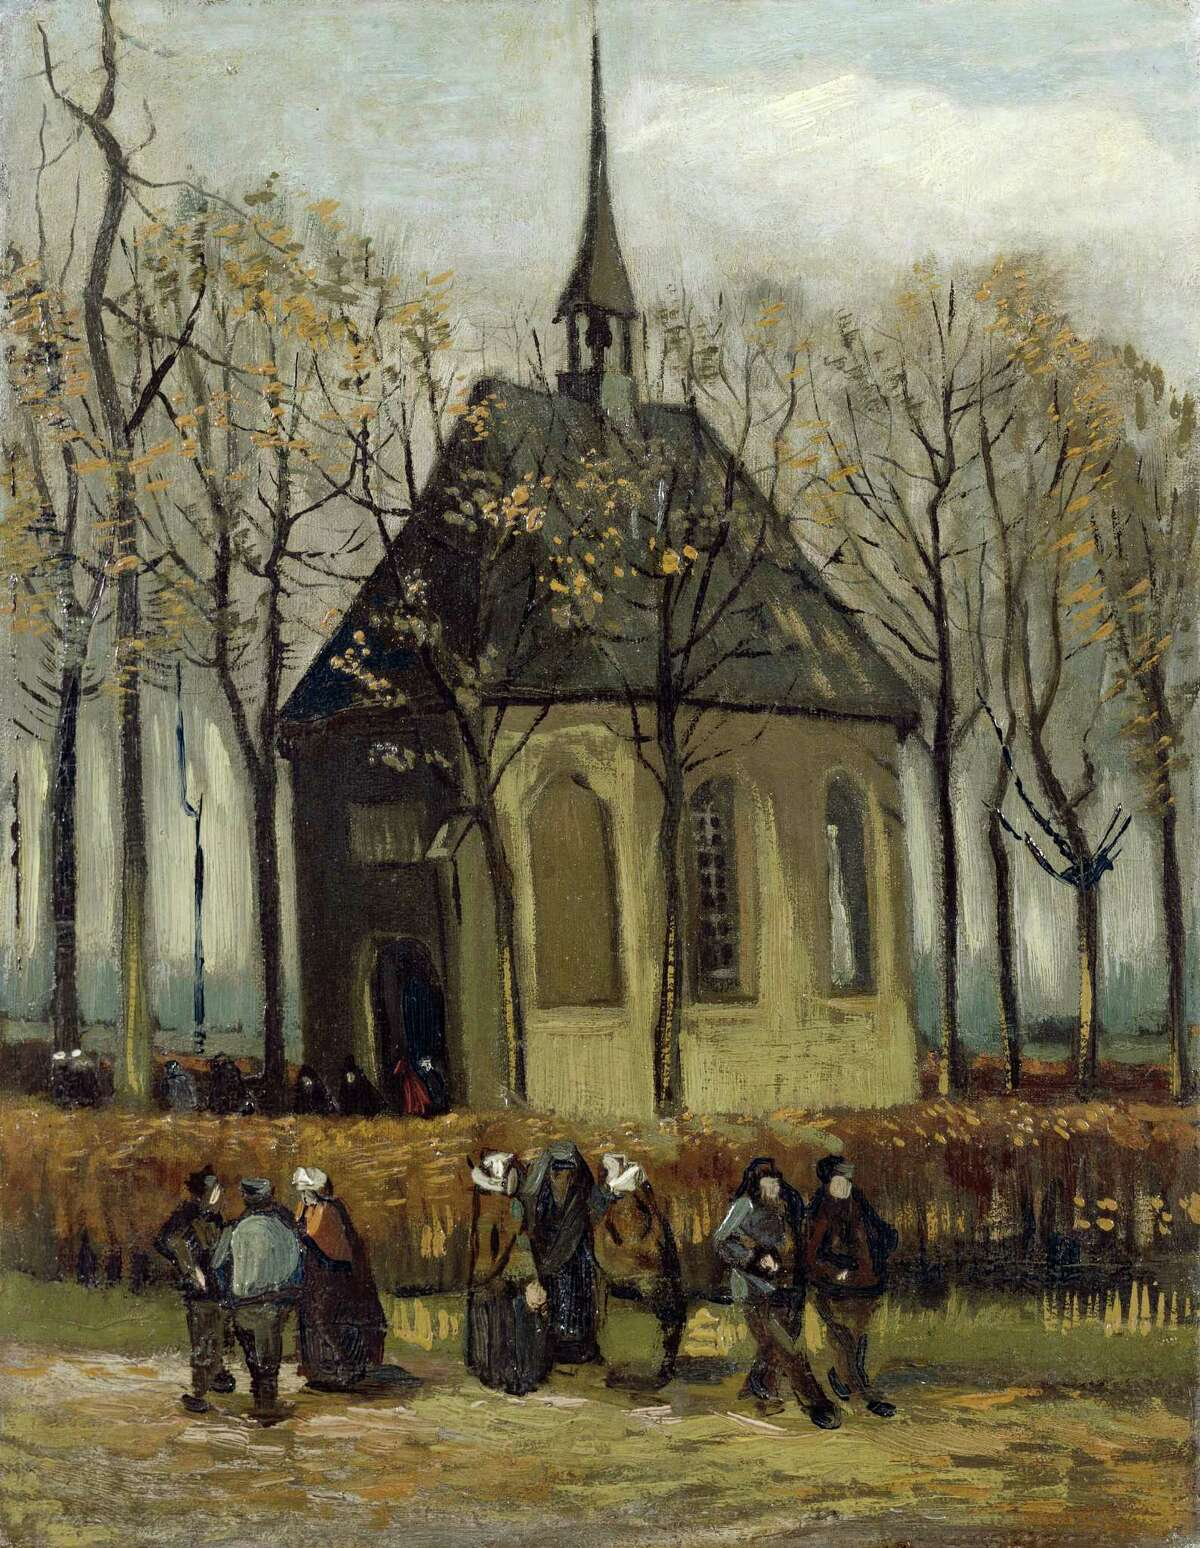 In this image provided by the Van Gogh Museum in Amsterdam on Friday, Sept. 30, 2016, the painting 'Congregation Leaving the Reformed Church at Nuene' by the artist Vincent Van Gogh. Italian police have recovered two Van Gogh paintings stolen from the Amsterdam museum in 2002.